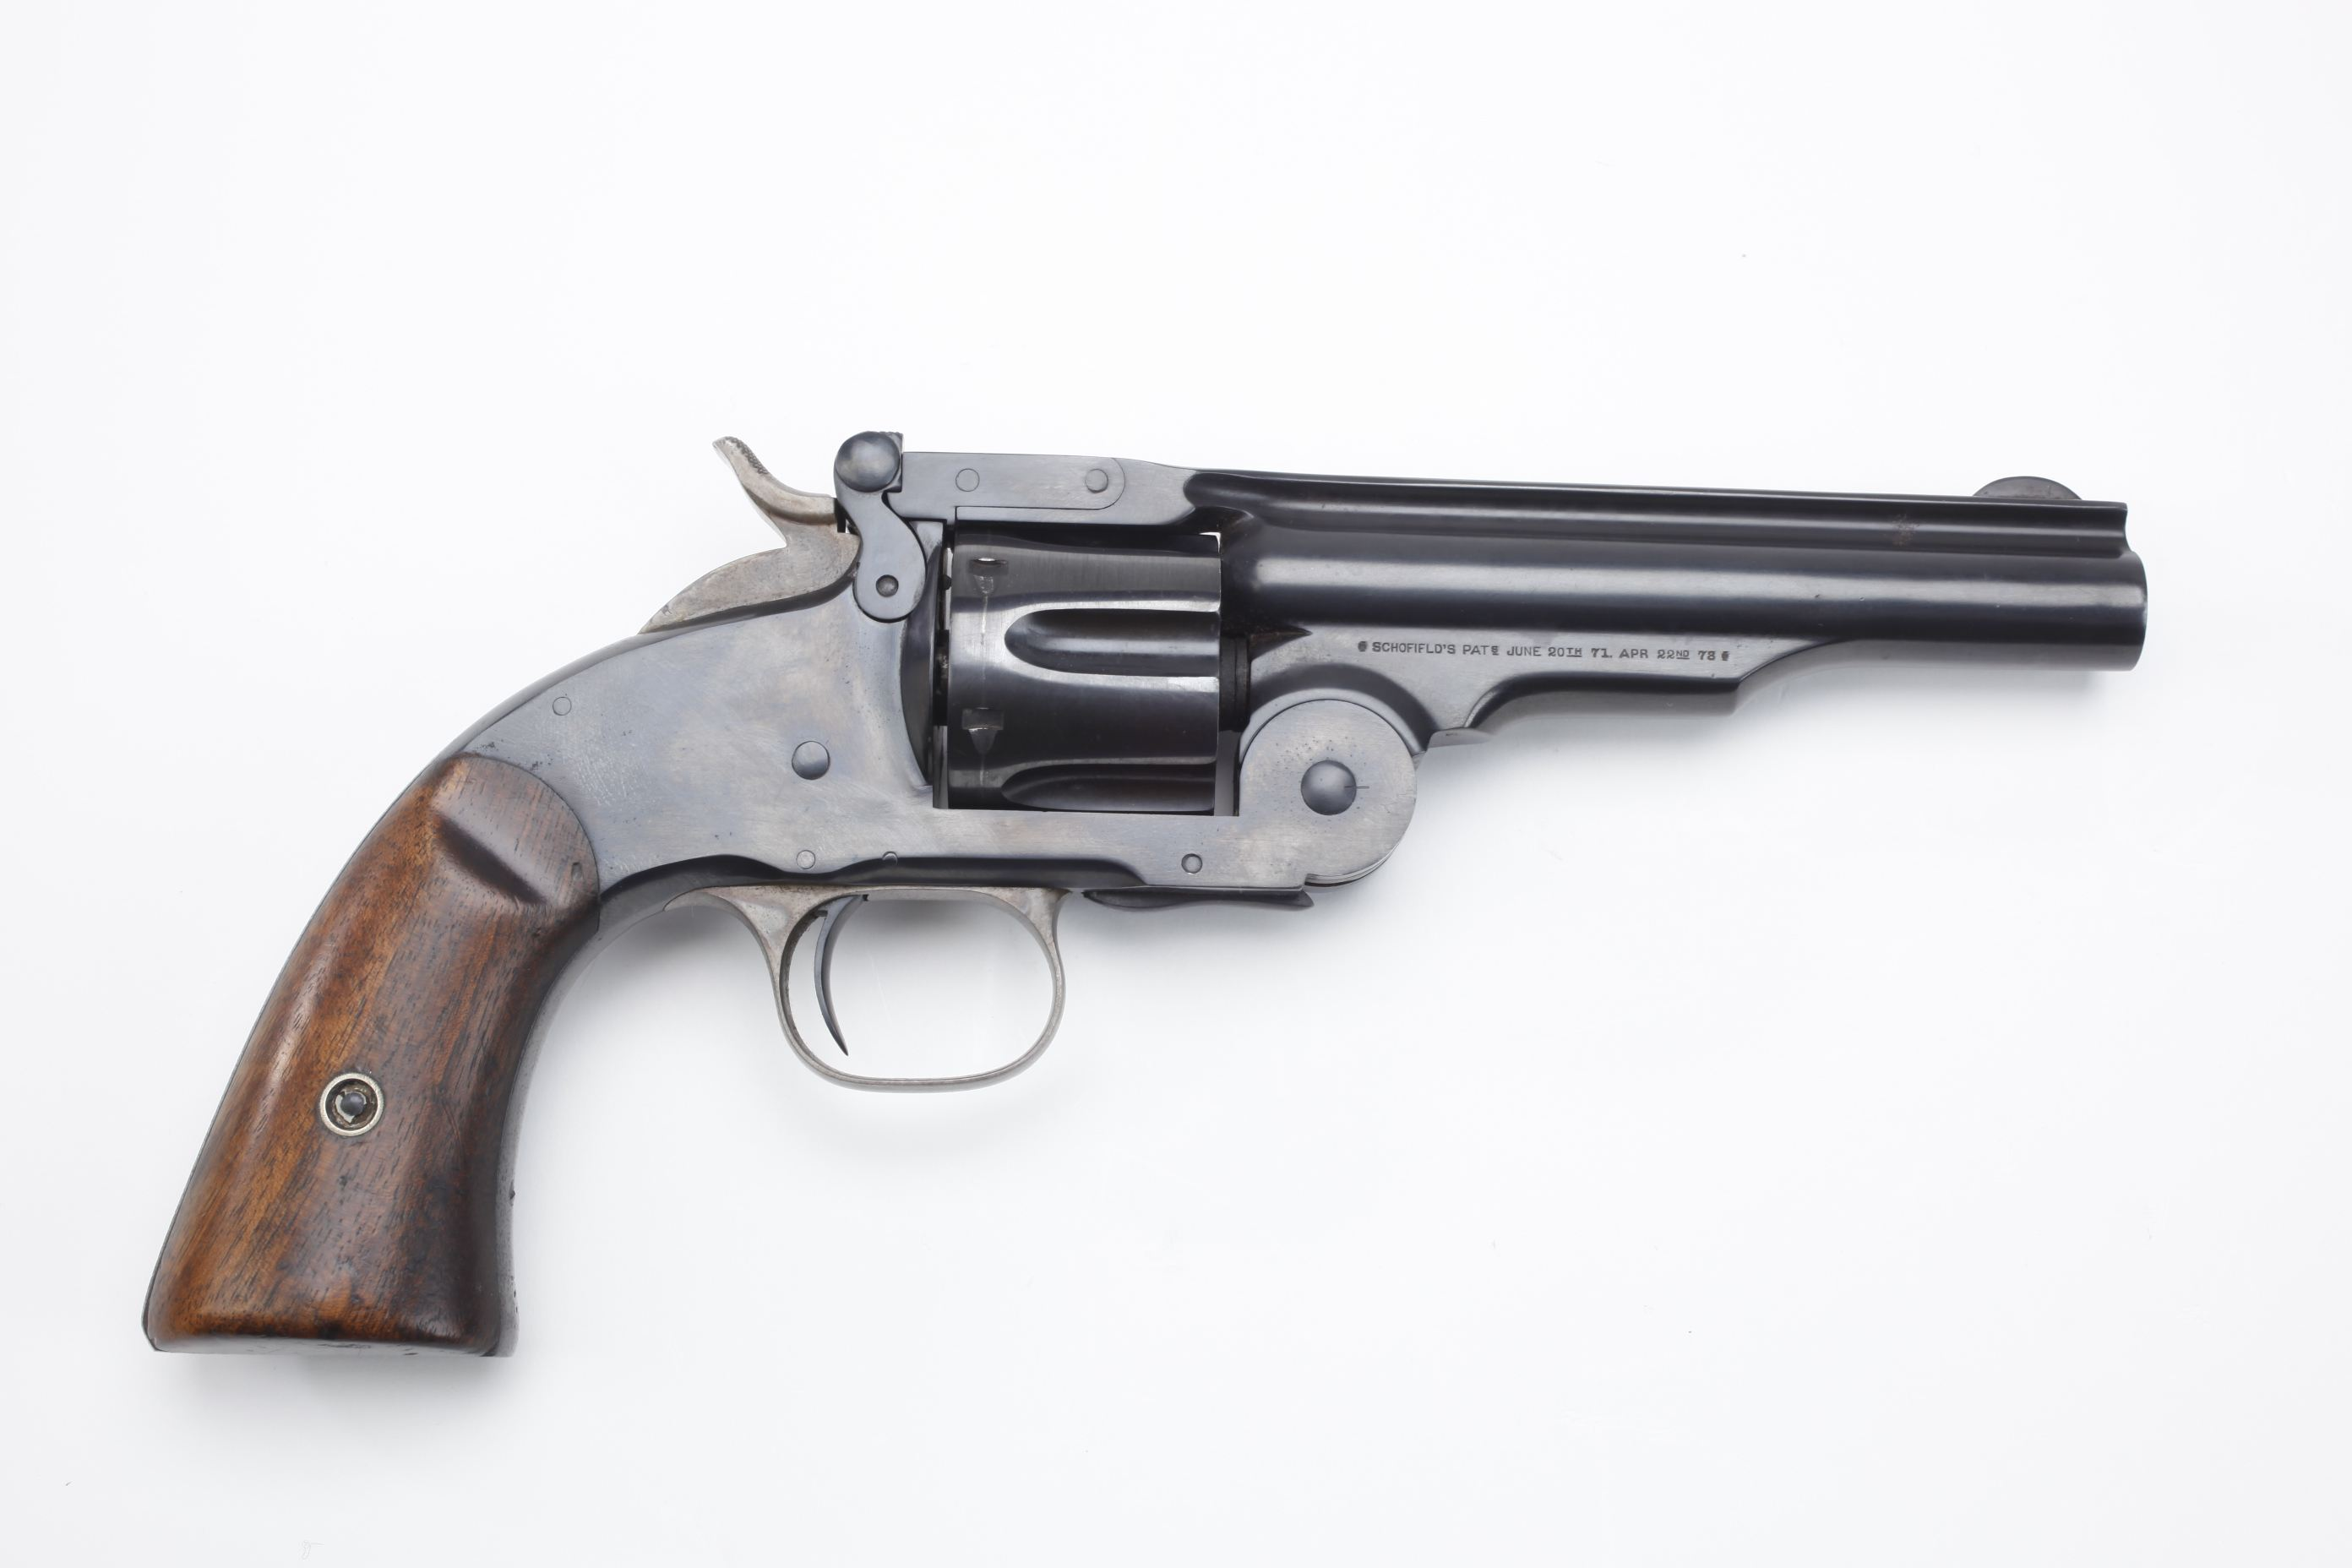 Smith & Wesson Second Model Schofield revolver